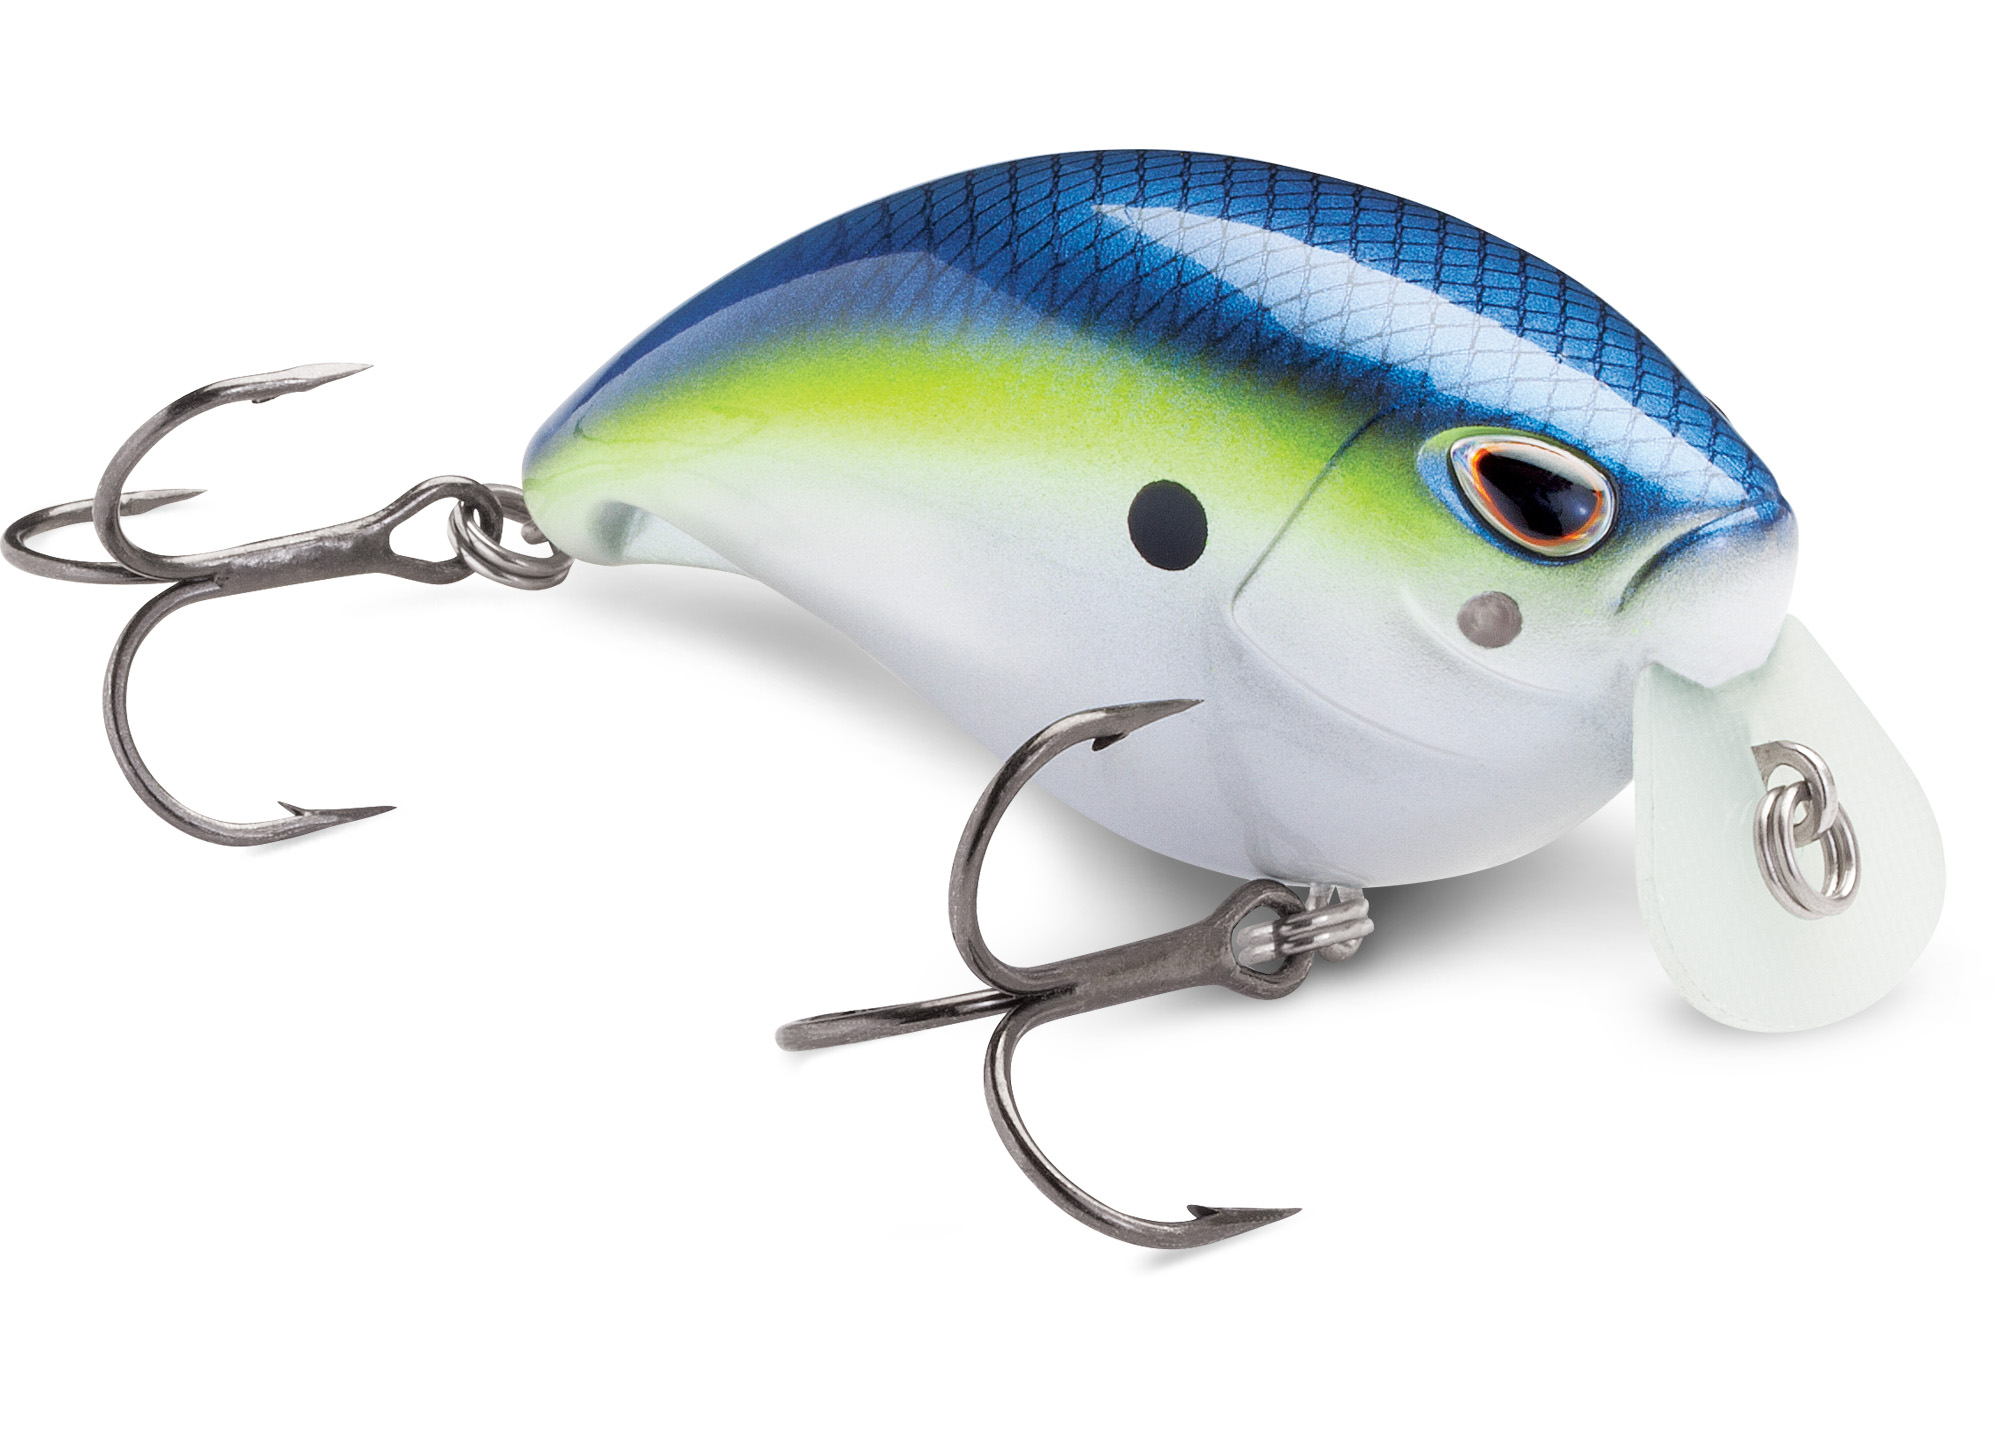 Arashi wake crank for Rapala fishing pro series ps4